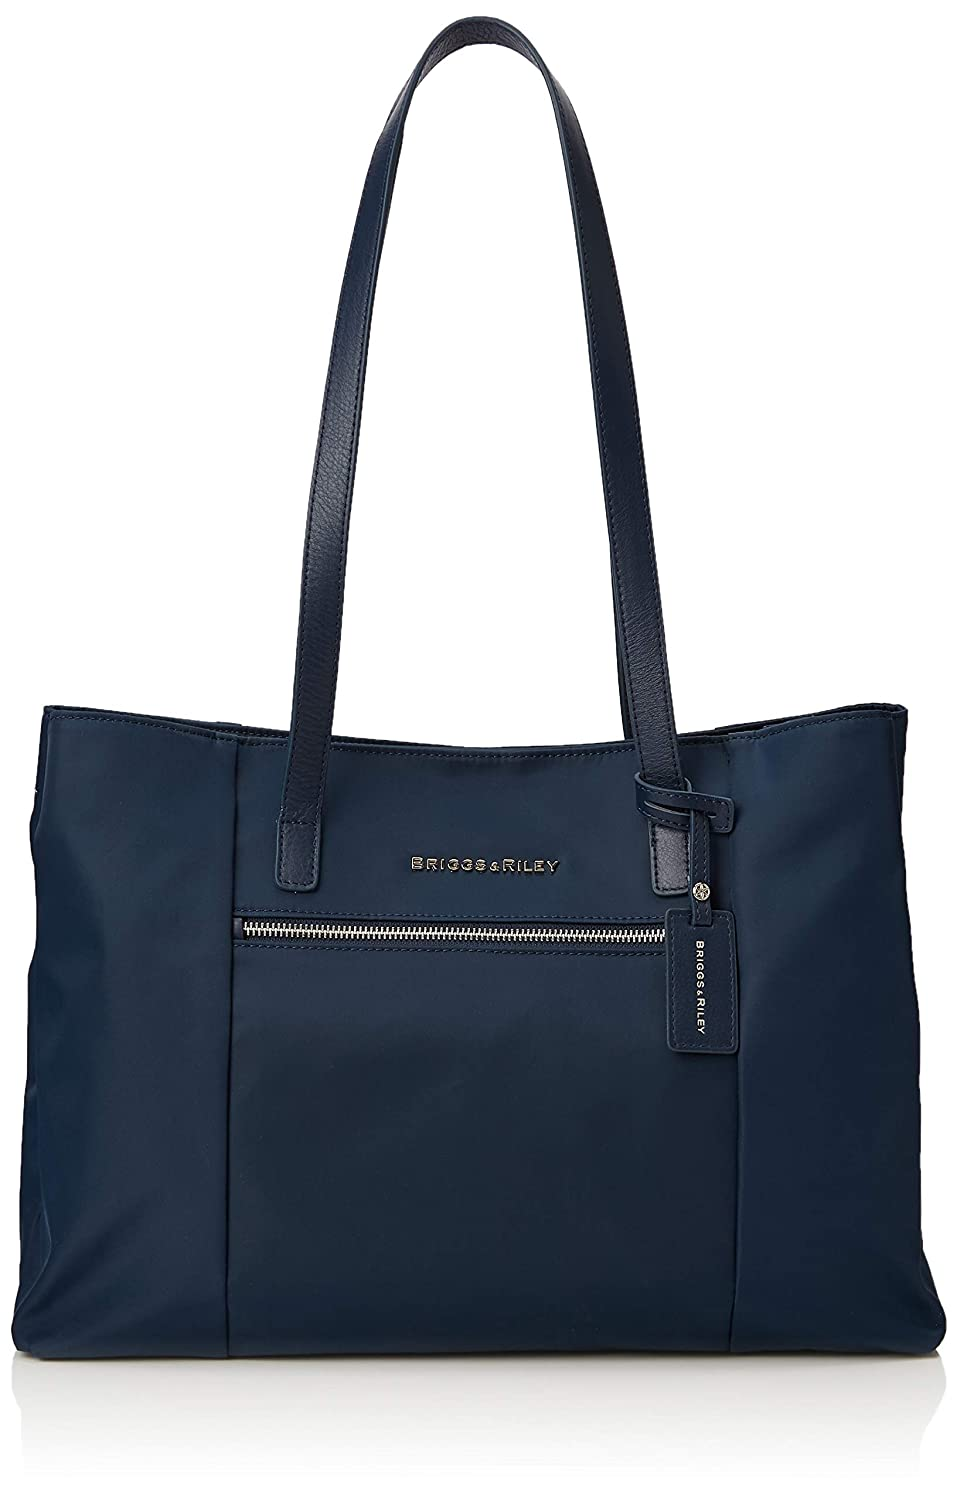 Briggs Riley Rhapsody Essential Tote Top Handle Bag, Navy, One Size